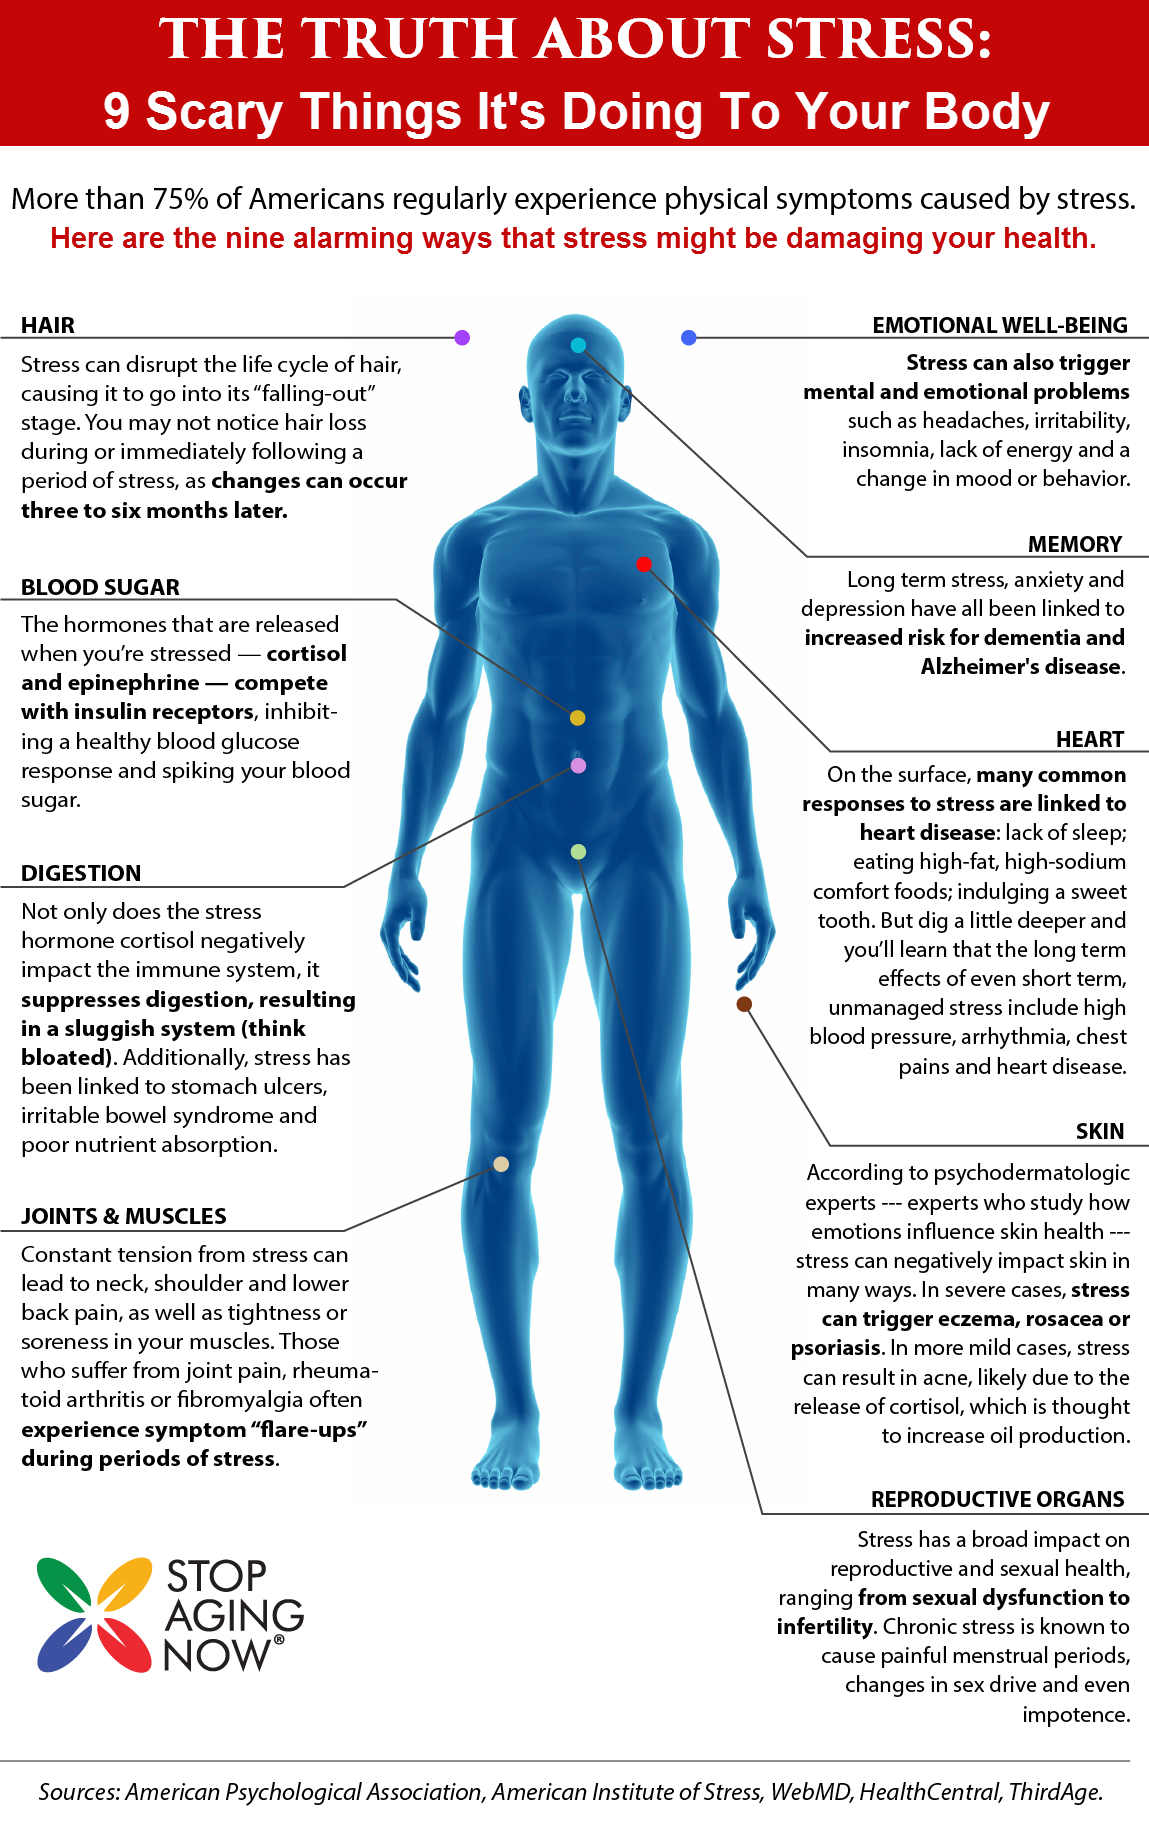 THE TRUTH ABOUT STRESS: 9 Scary Things It\'s Doing To Your Body ...